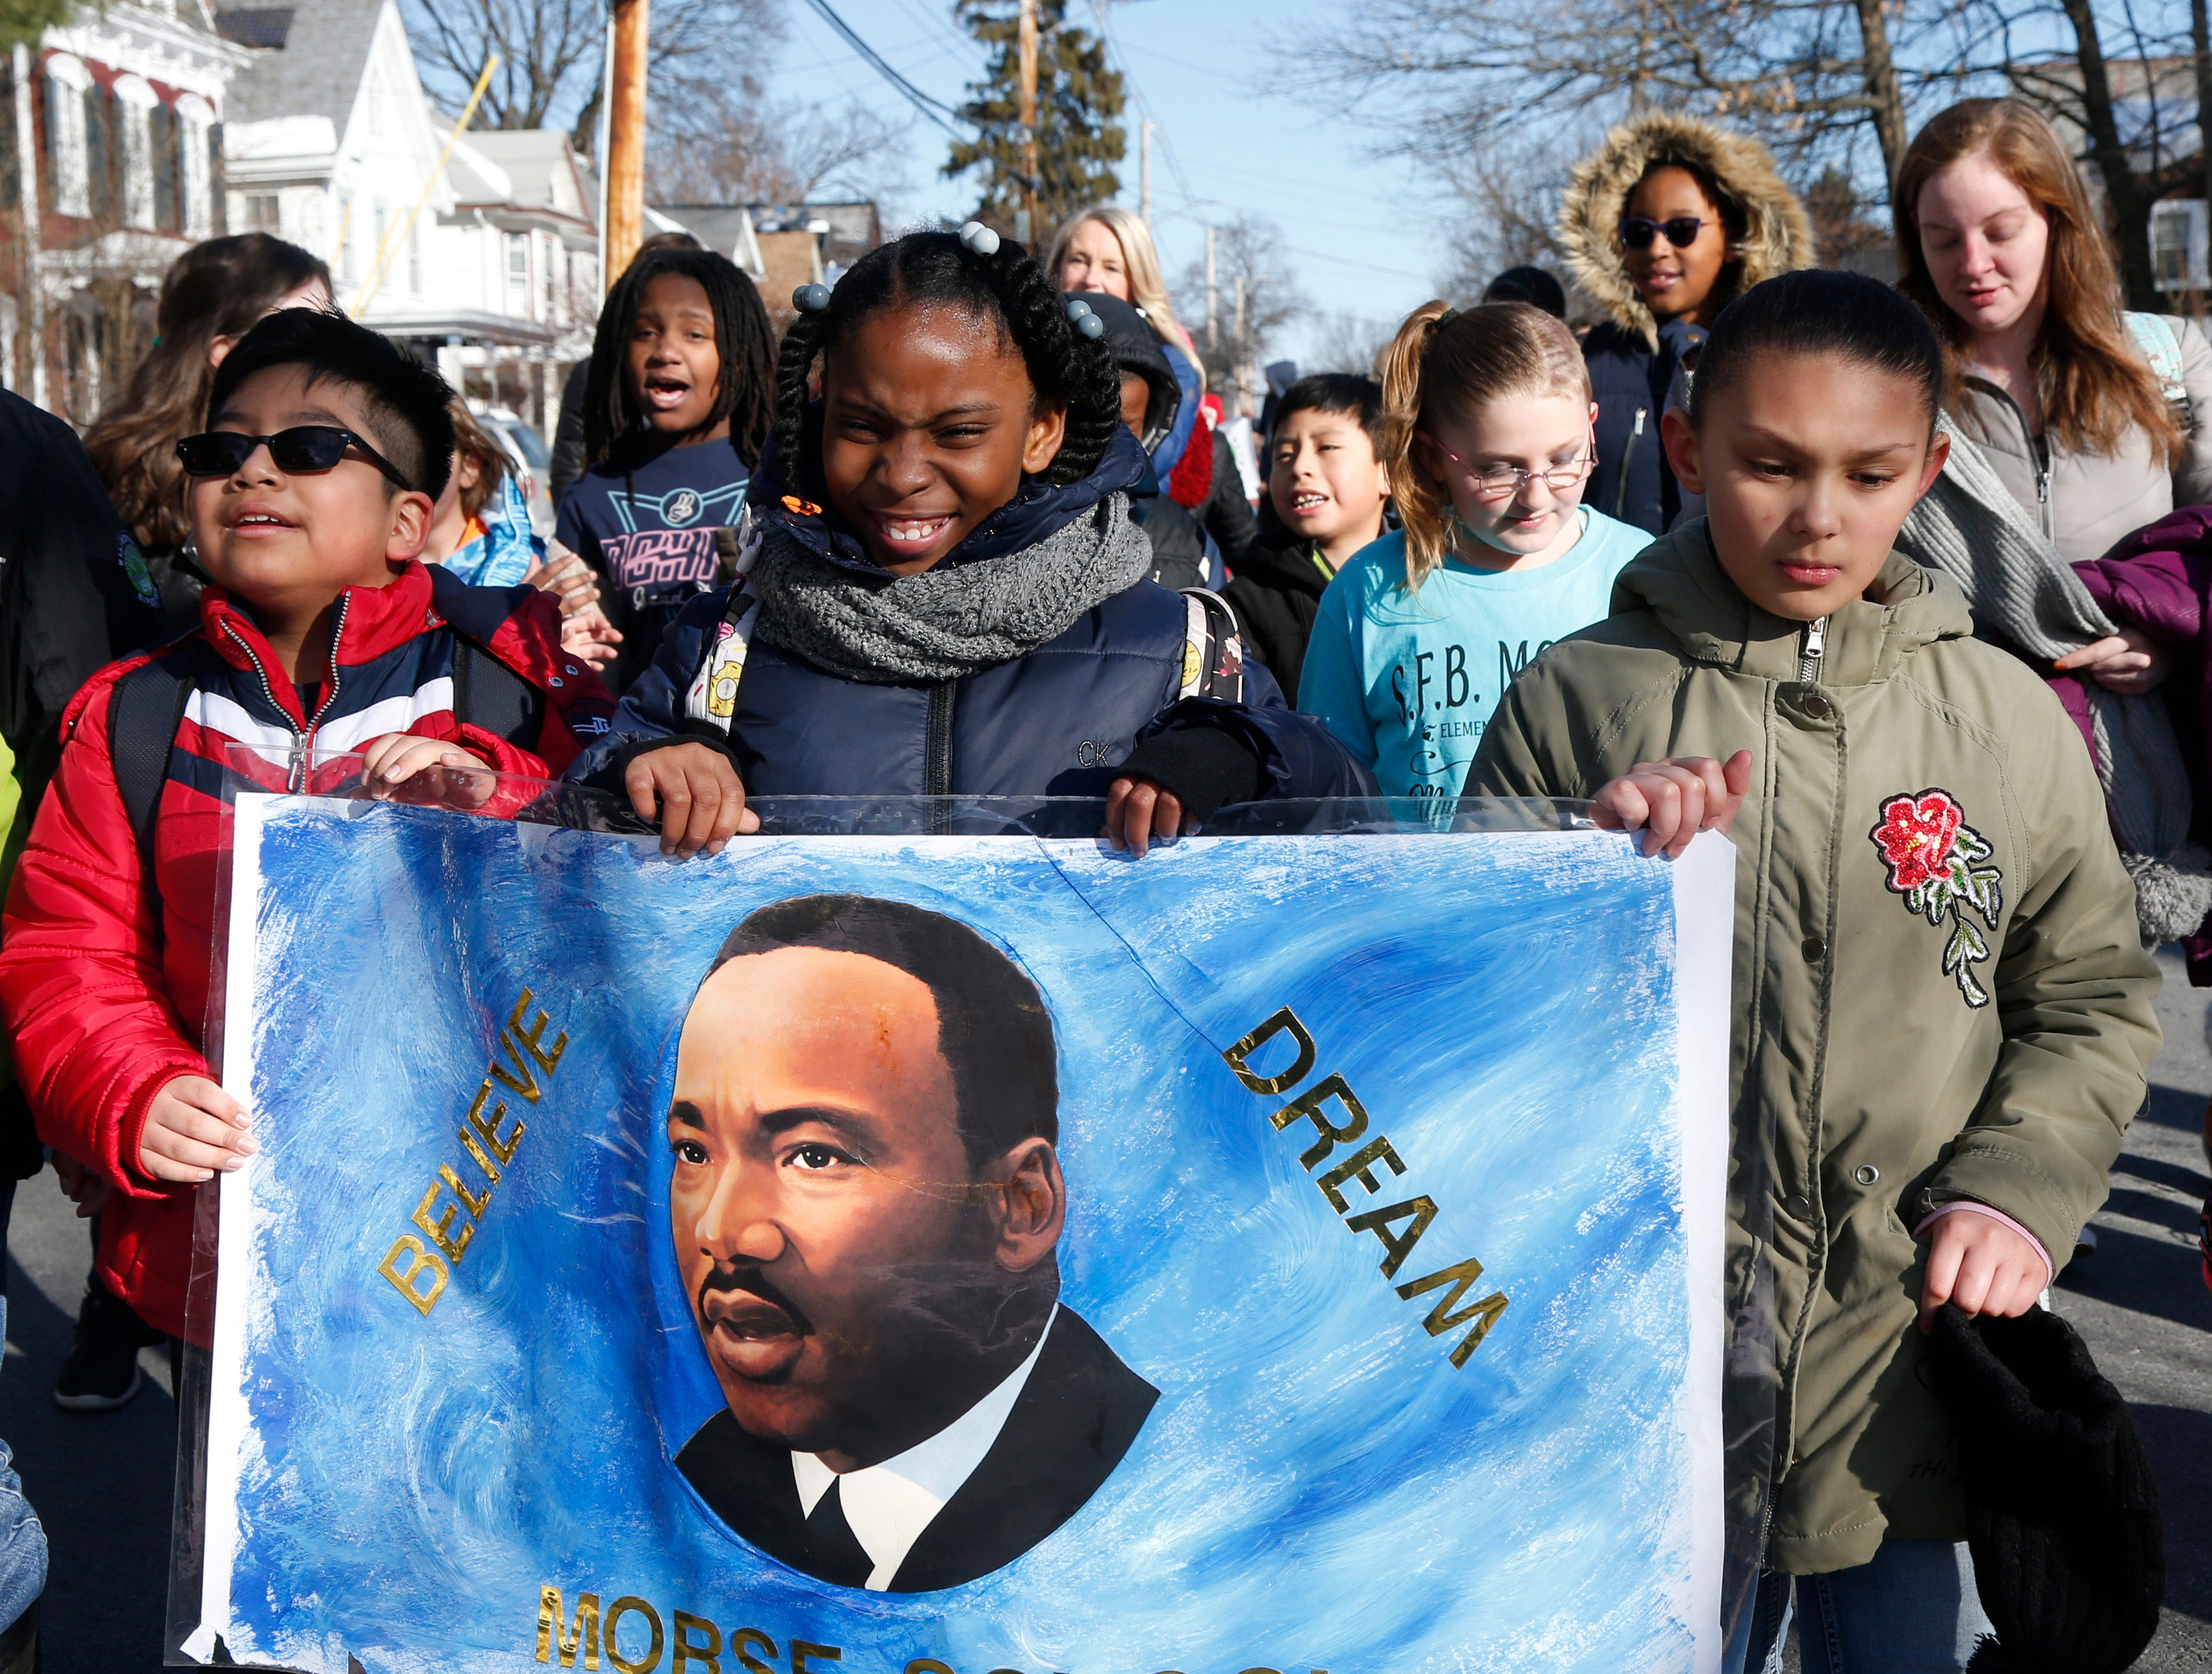 Students from Morse Elementary School, from left, Bradley Vazquez, Shantinae Windett and Brianna Sheldon  participate in Thursday's Martin Luther King Celebration, including a peace walk at Poughkeepsie High School on February 14, 2019.